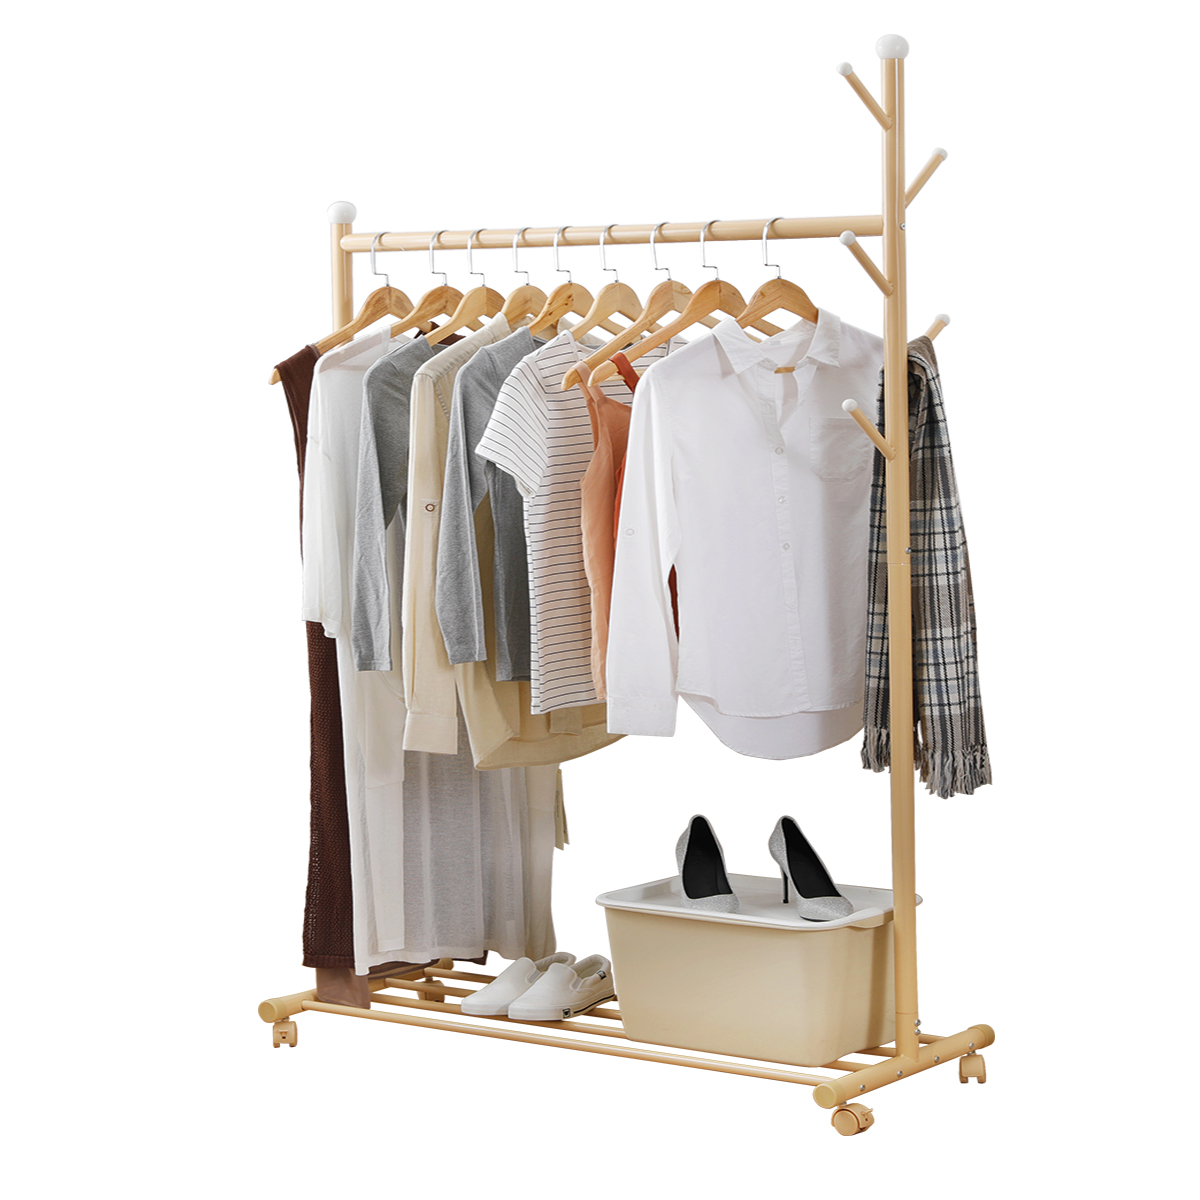 home organizer multifunctional clothing rack steel rod hanging clothes rolling garment rack organizer indoor hanger with bottom shelves integrated